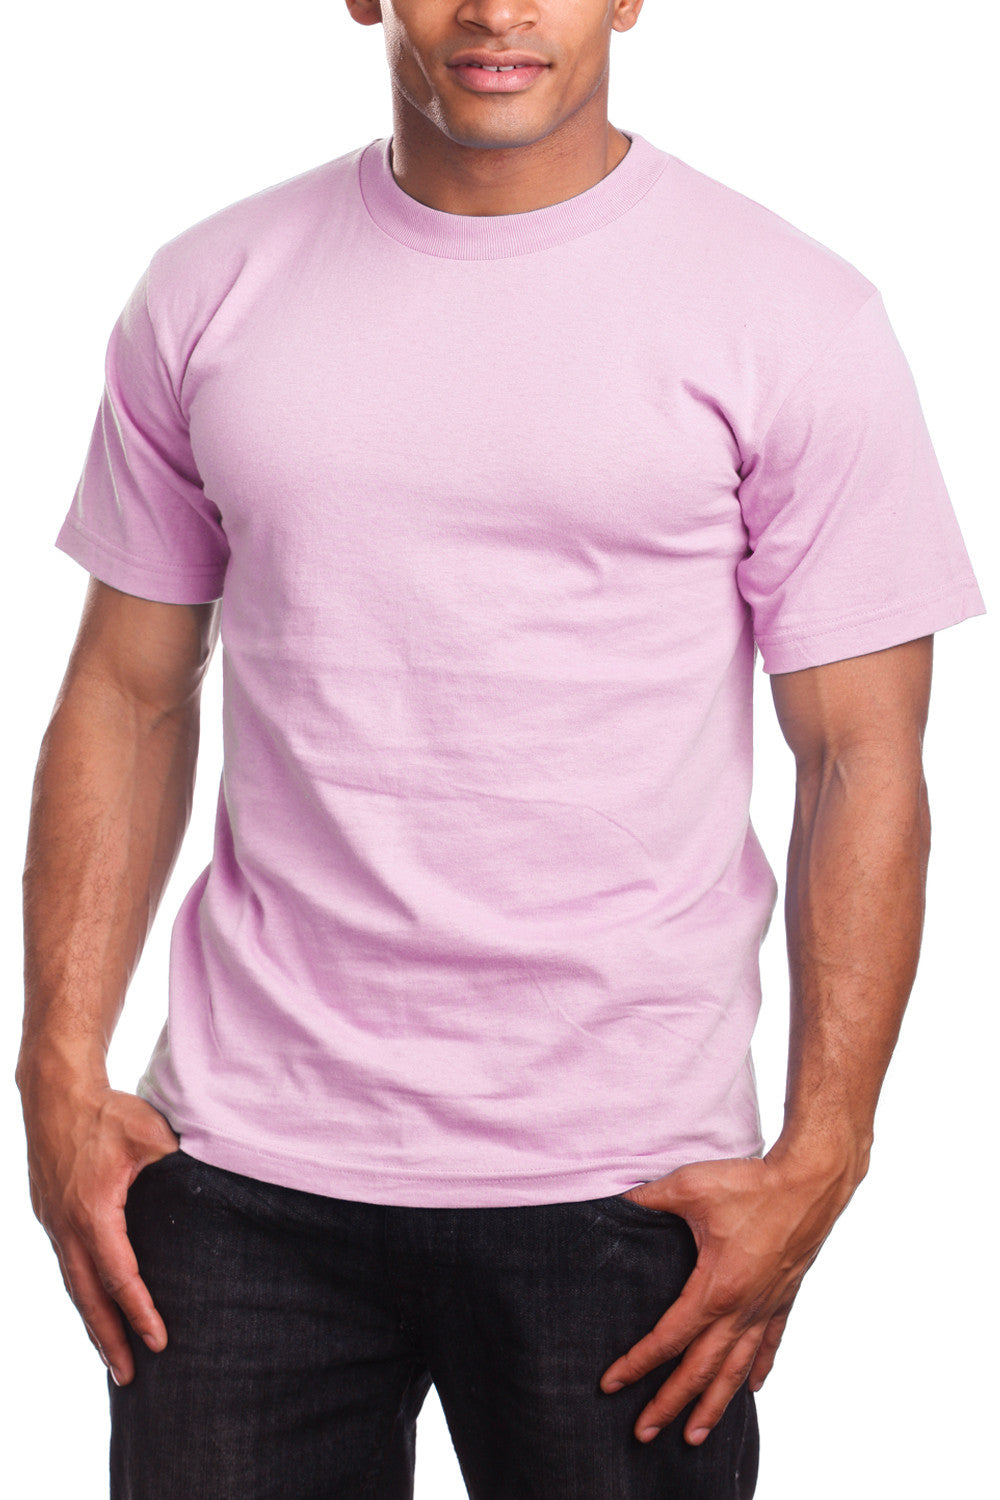 Athletic Fit Pink T-Shirts Activewear Tee Shirts